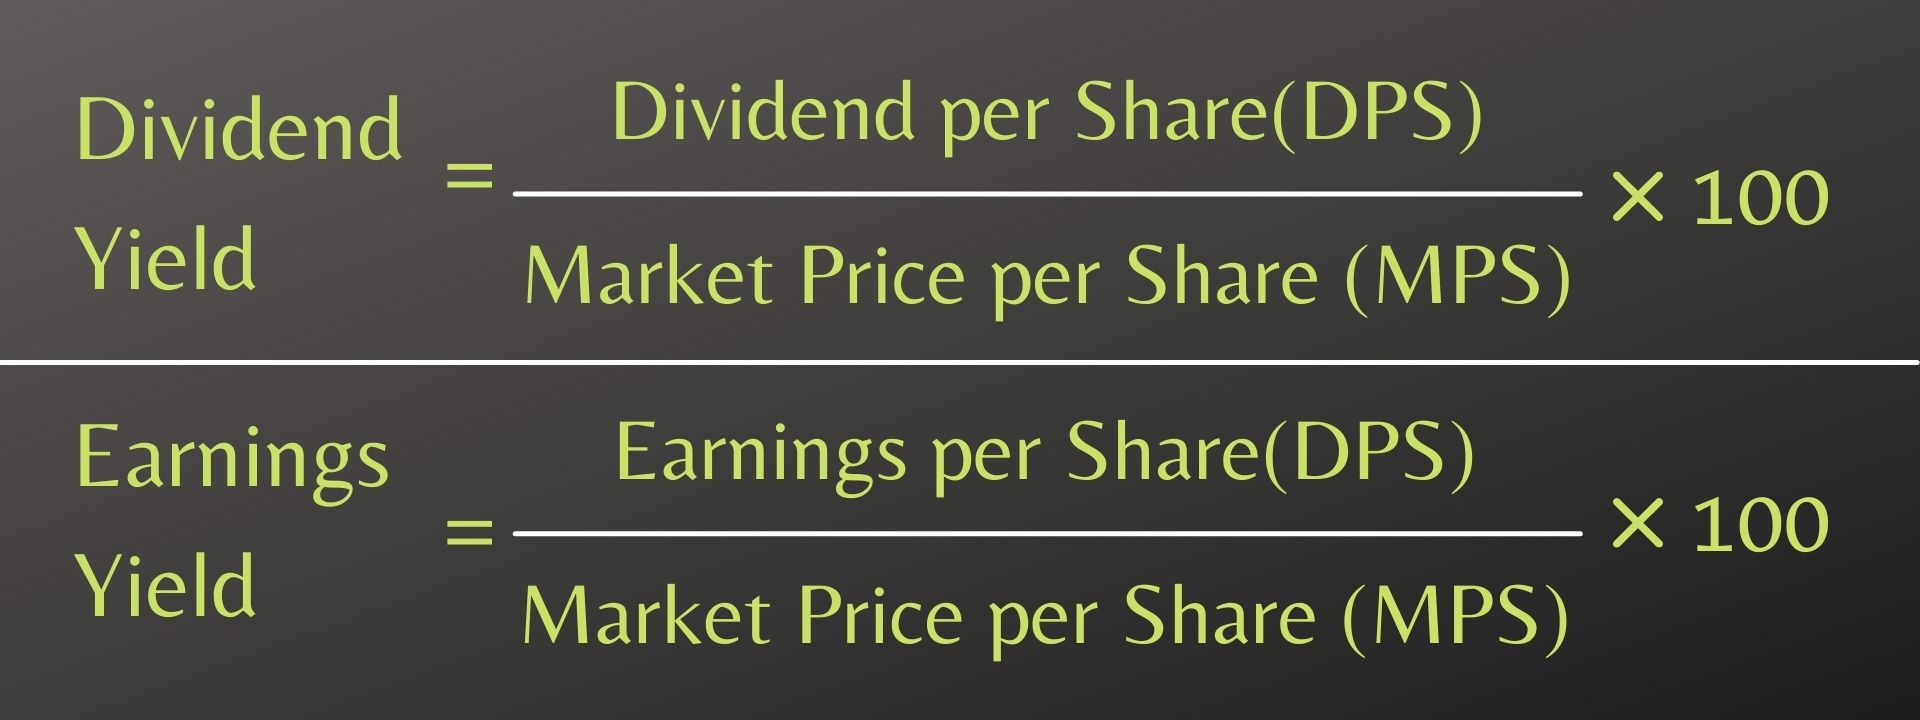 Dividend and Earning Yield